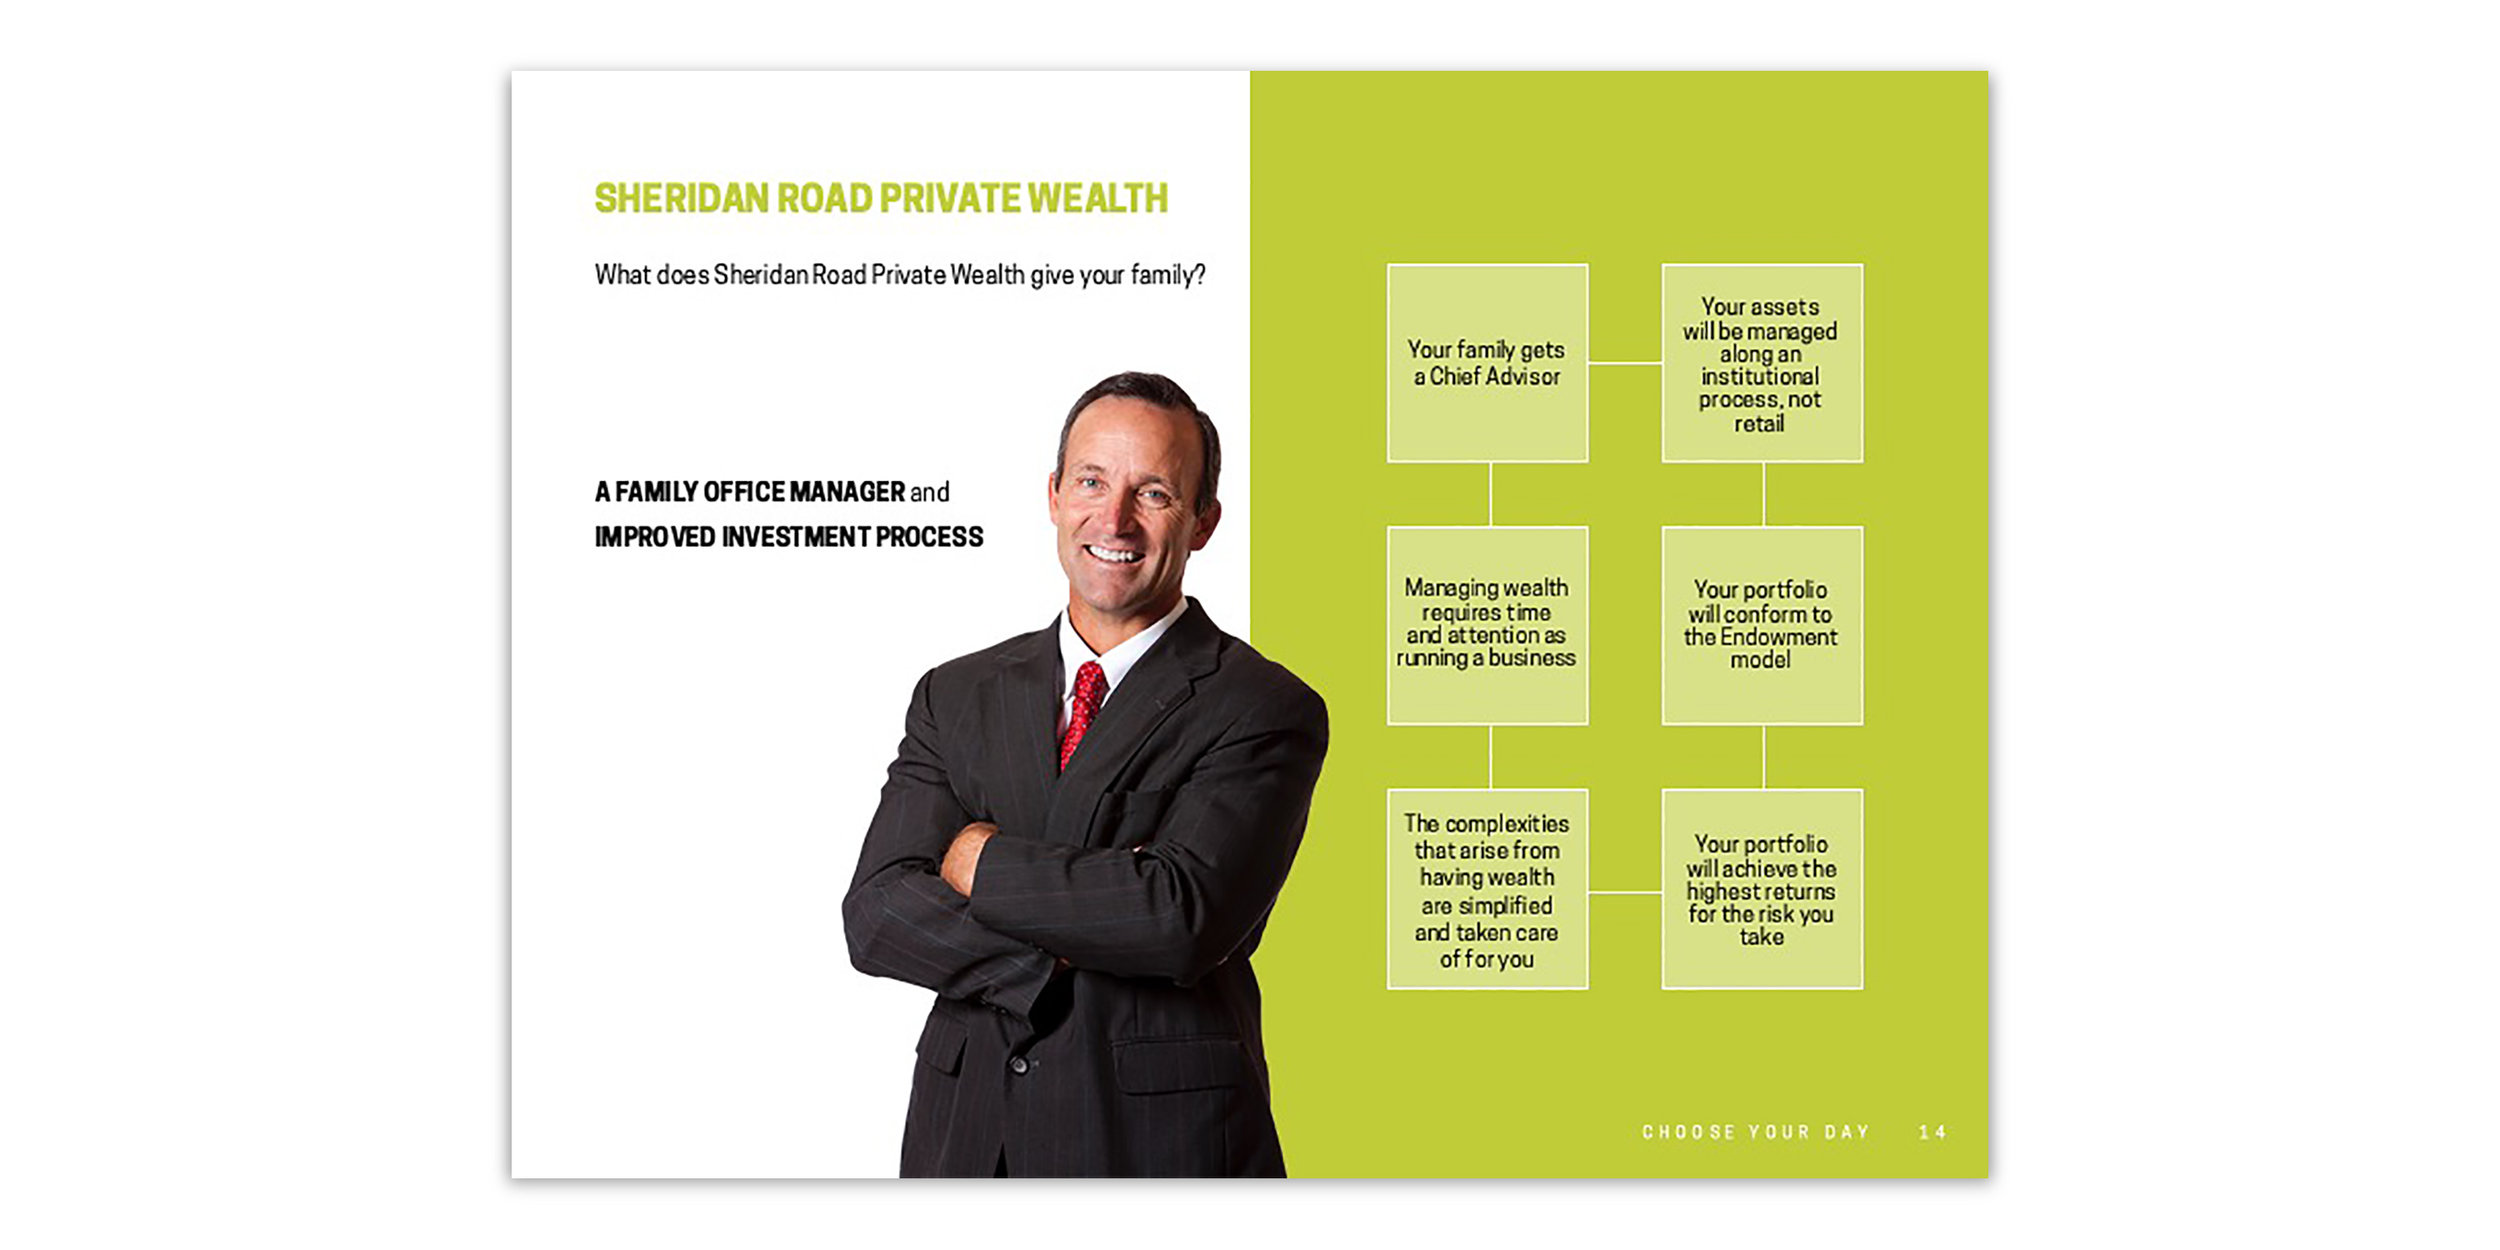 Web_Samples_SheridanRoad_Powerpoint_11.jpg